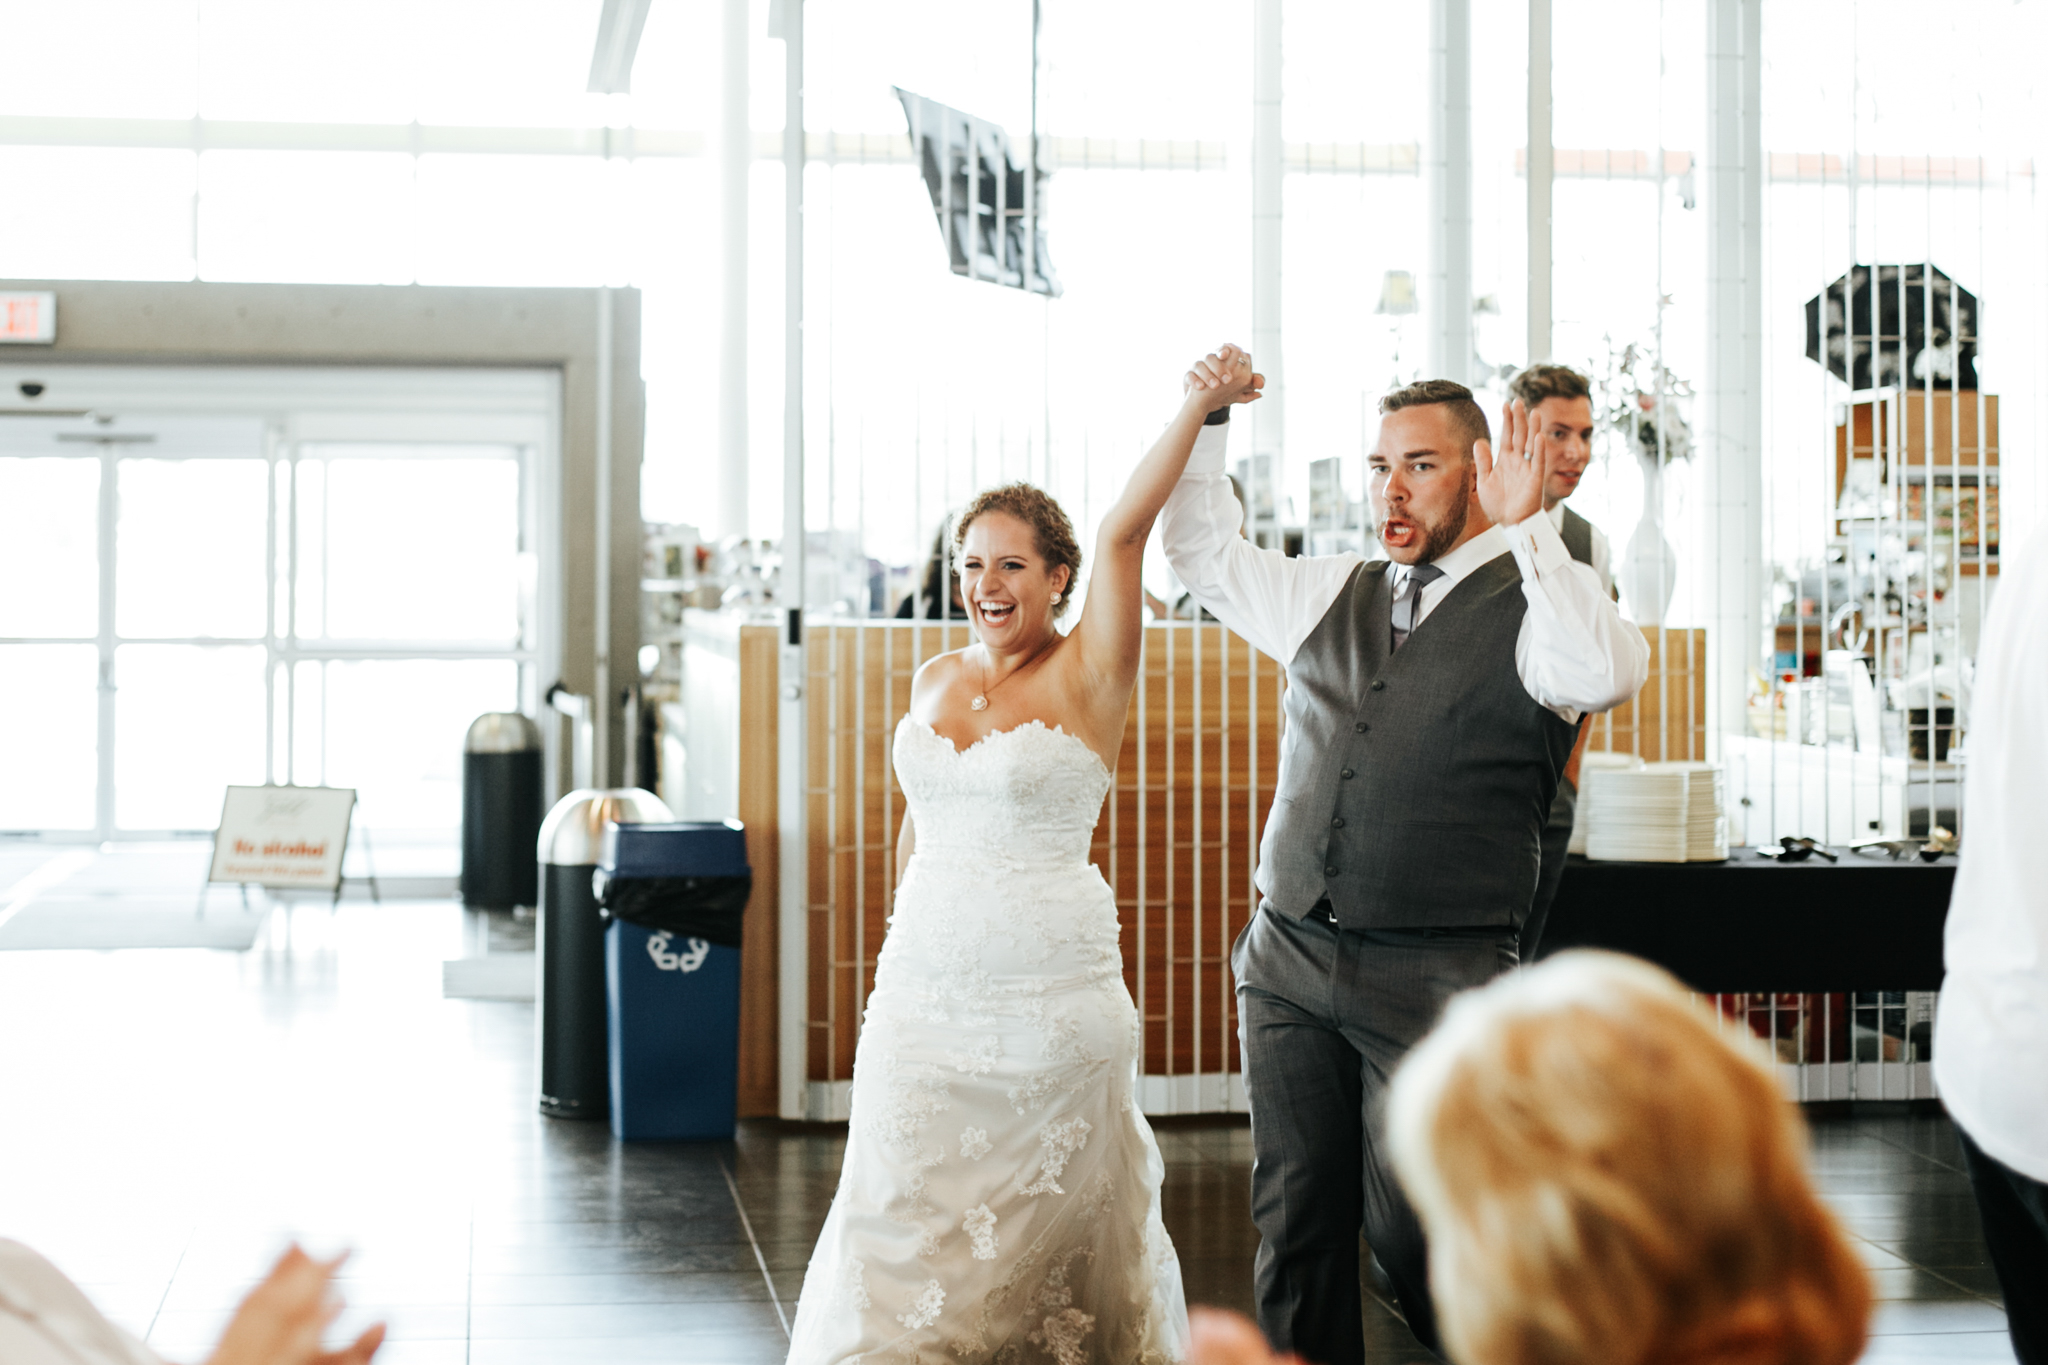 lethbridge-wedding-photographer-love-and-be-loved-photography-trent-danielle-galt-reception-picture-image-photo-175.jpg